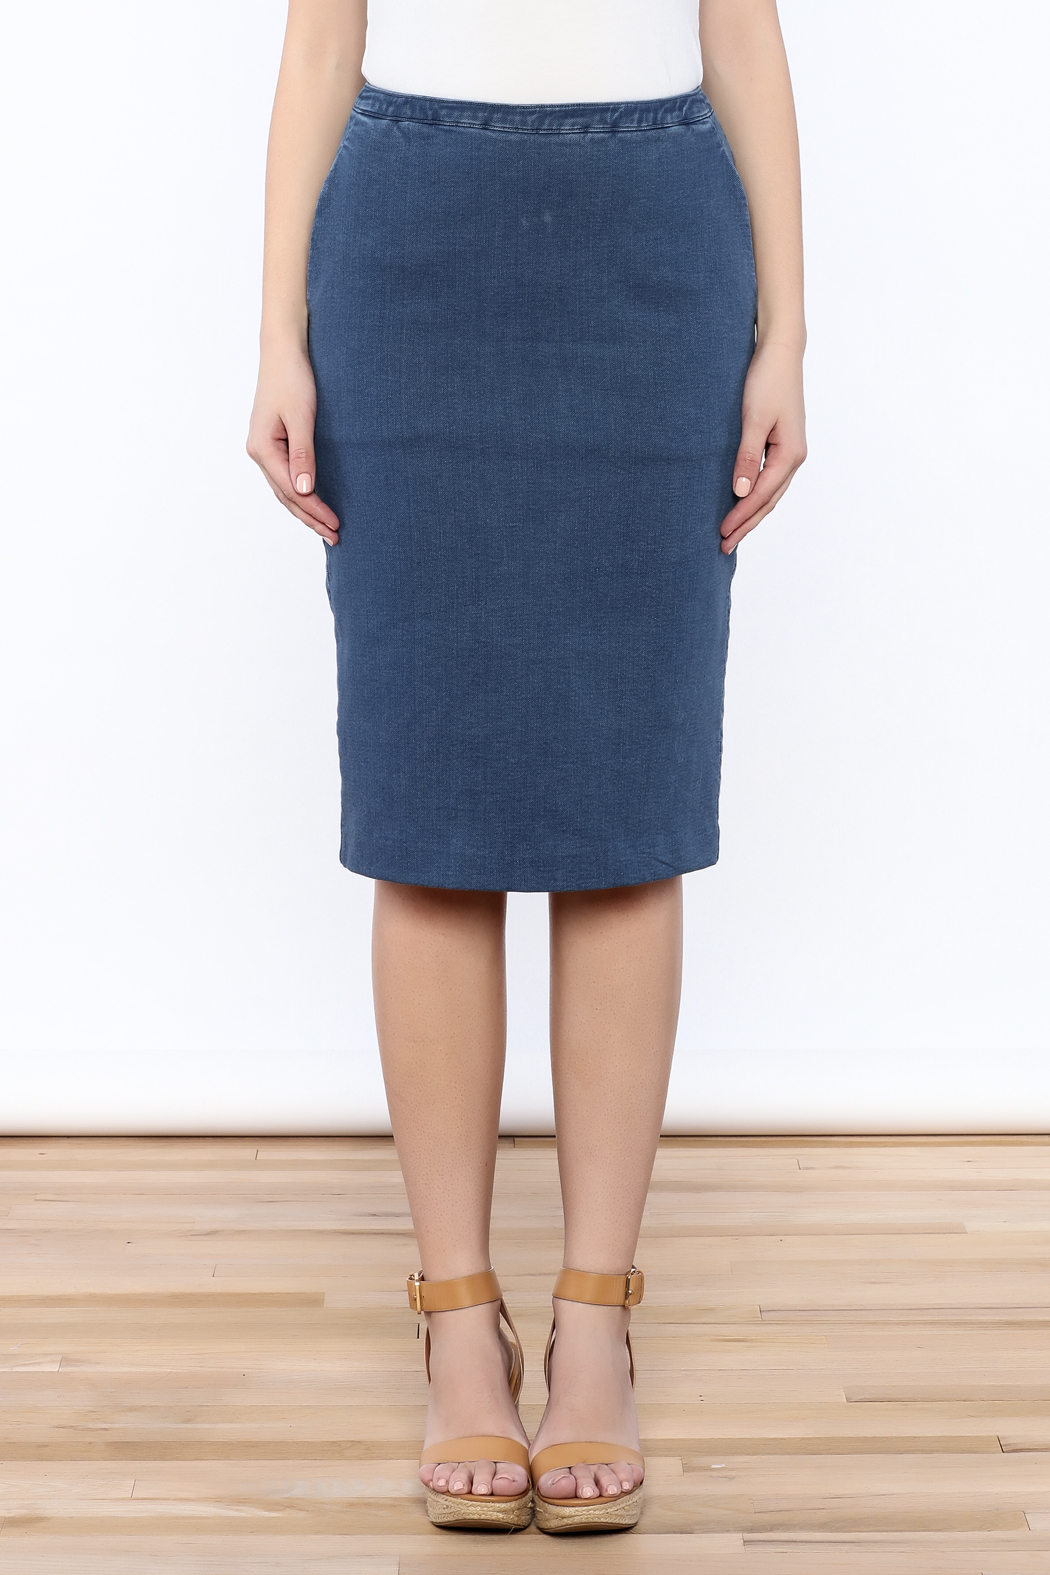 FRNCH Denim Pencil Skirt from New York City by Jupe — Shoptiques